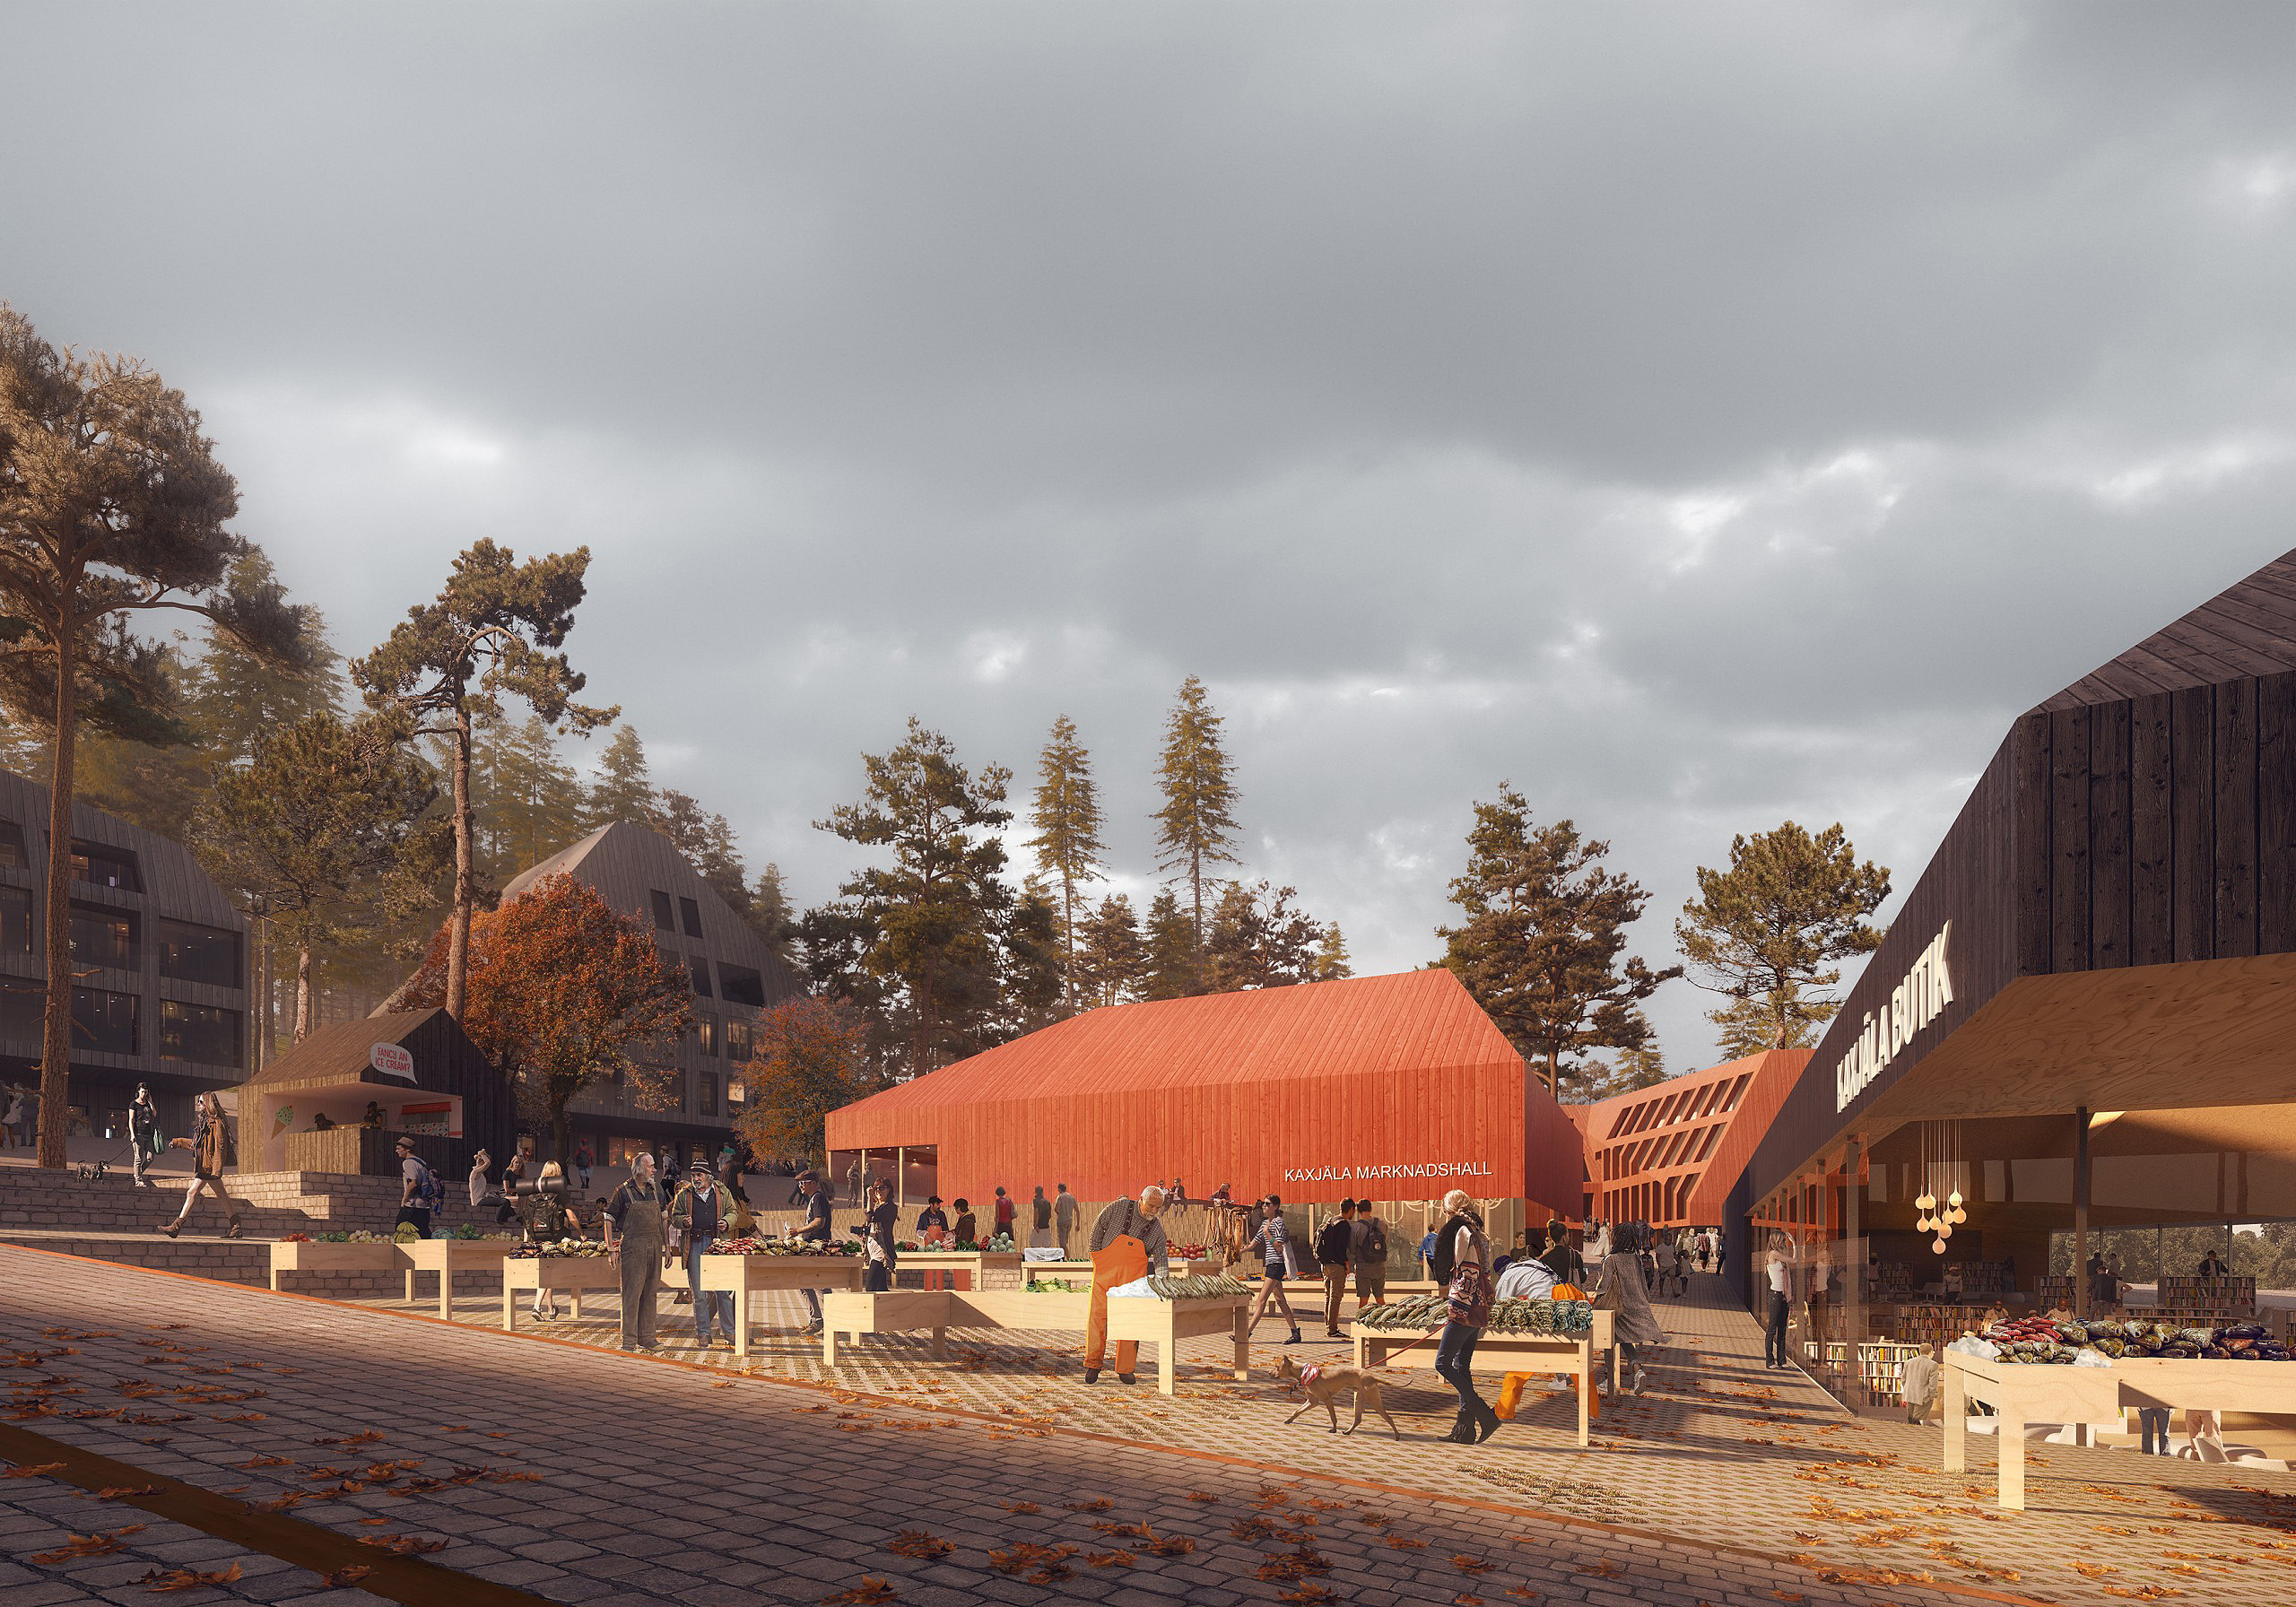 visualization for a design competition in Finland: fish market on small square in front of a red wood building, warm light and autumn atmoshere